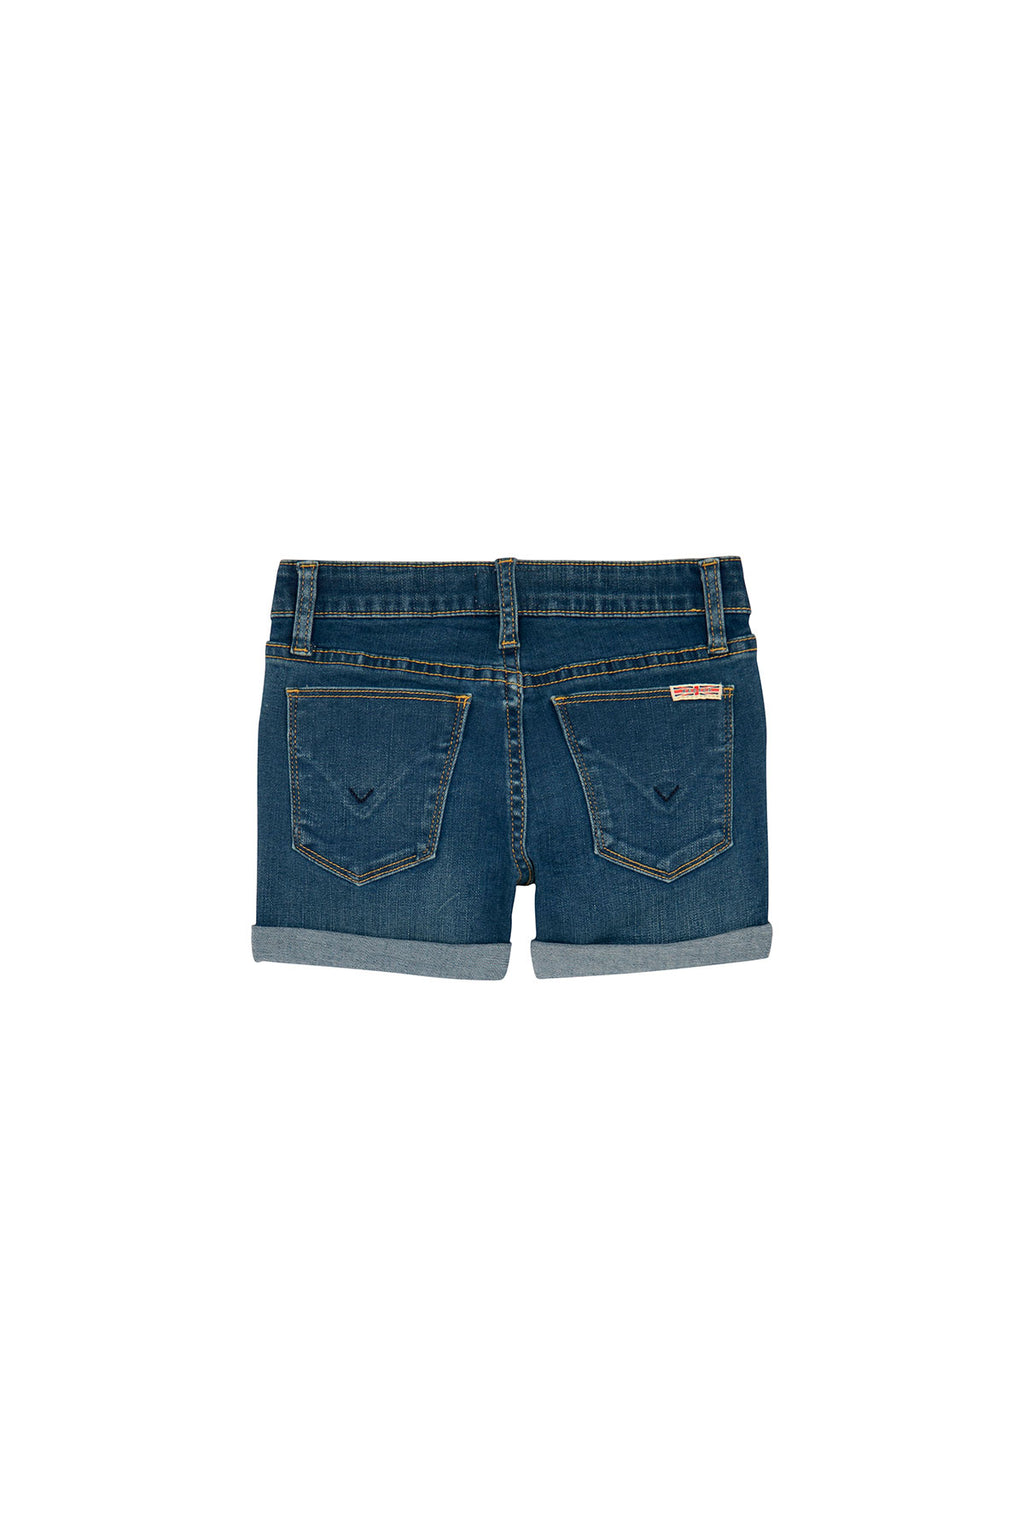 GIRLS BRIA SHORT, SIZES 7-16 - SUNWASHED - Image 2